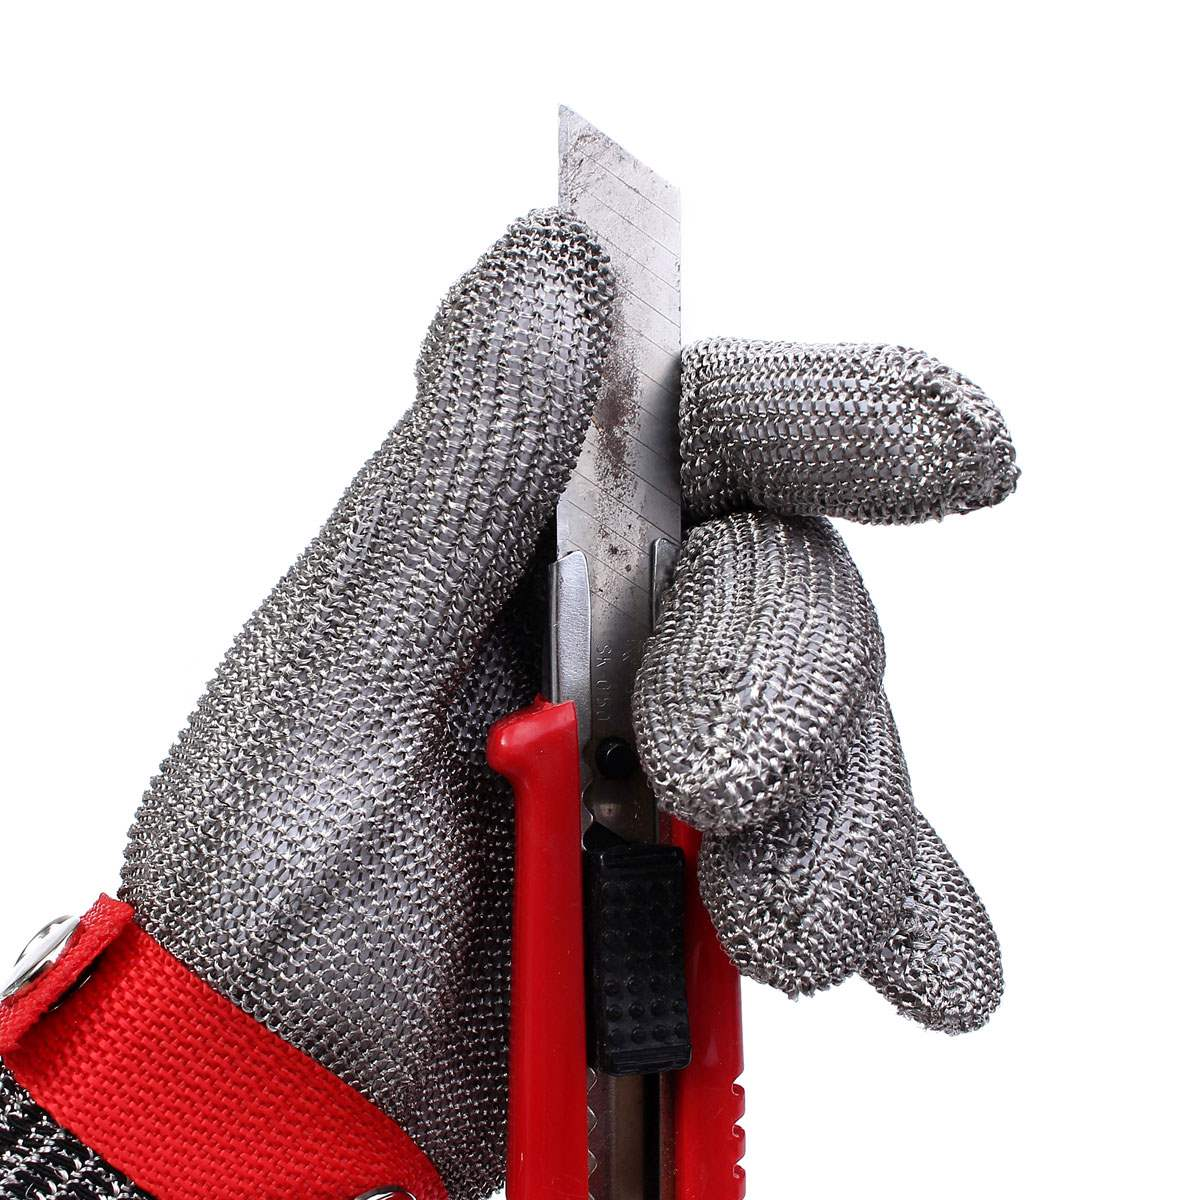 New Safety Cut Proof Stab Resistant Stainless Steel Metal Mesh Gloves Grade 5 Protective Gloves 10 pair safety cut proof stab resistant stainless steel wire metal mesh butcher gloves cut resistant working safety